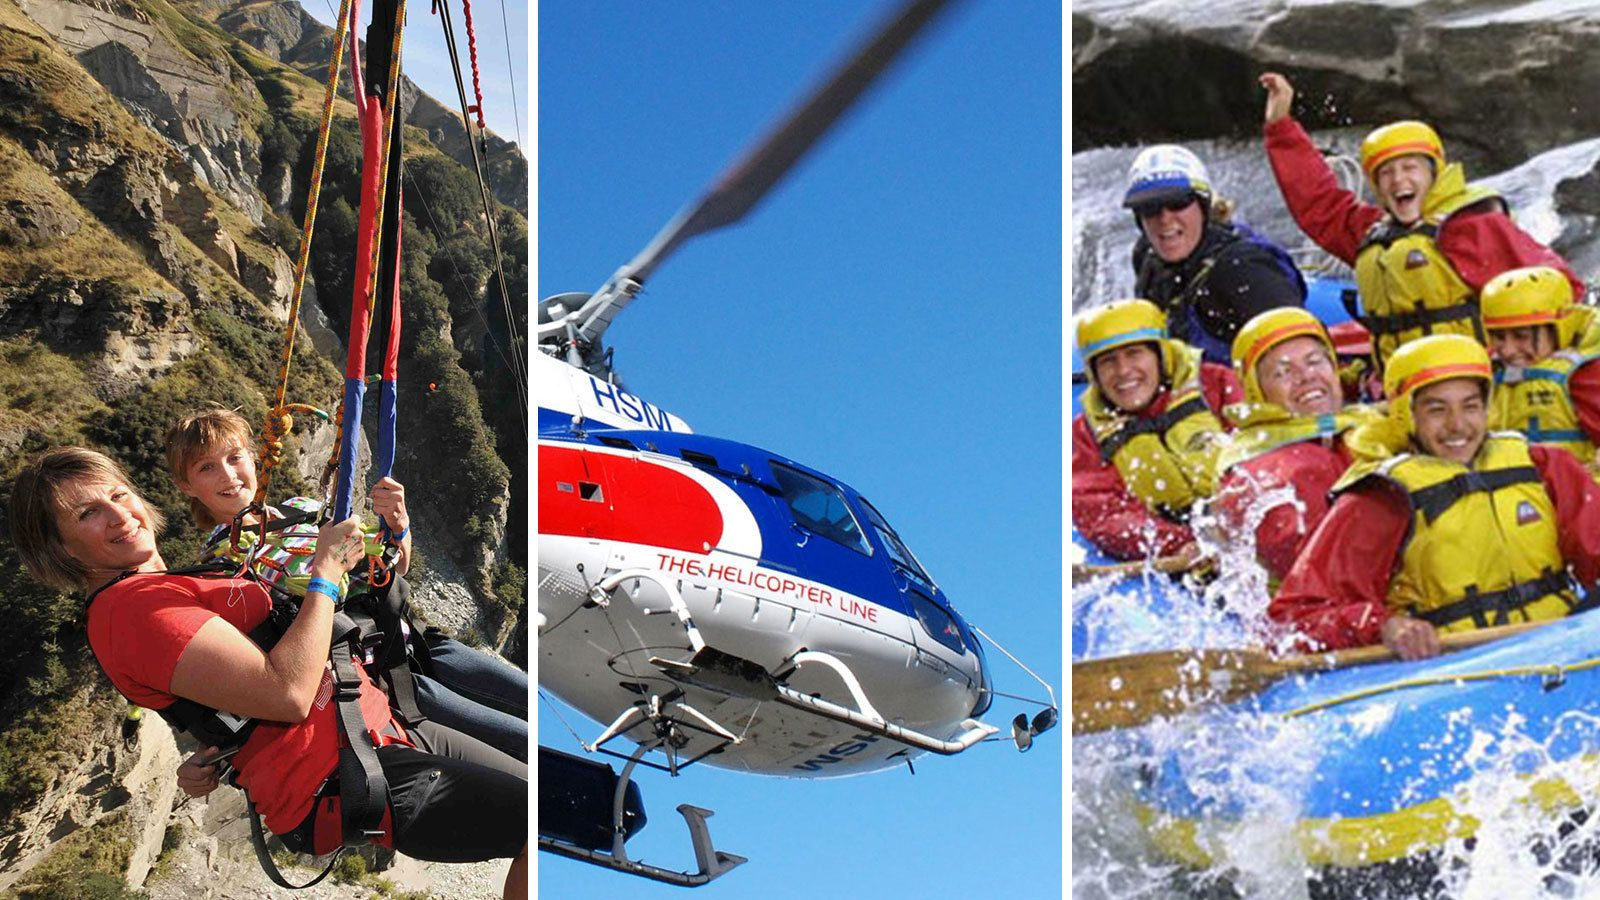 Shotover Canyon Swing, Scenic Helicopter Ride & River Rafting